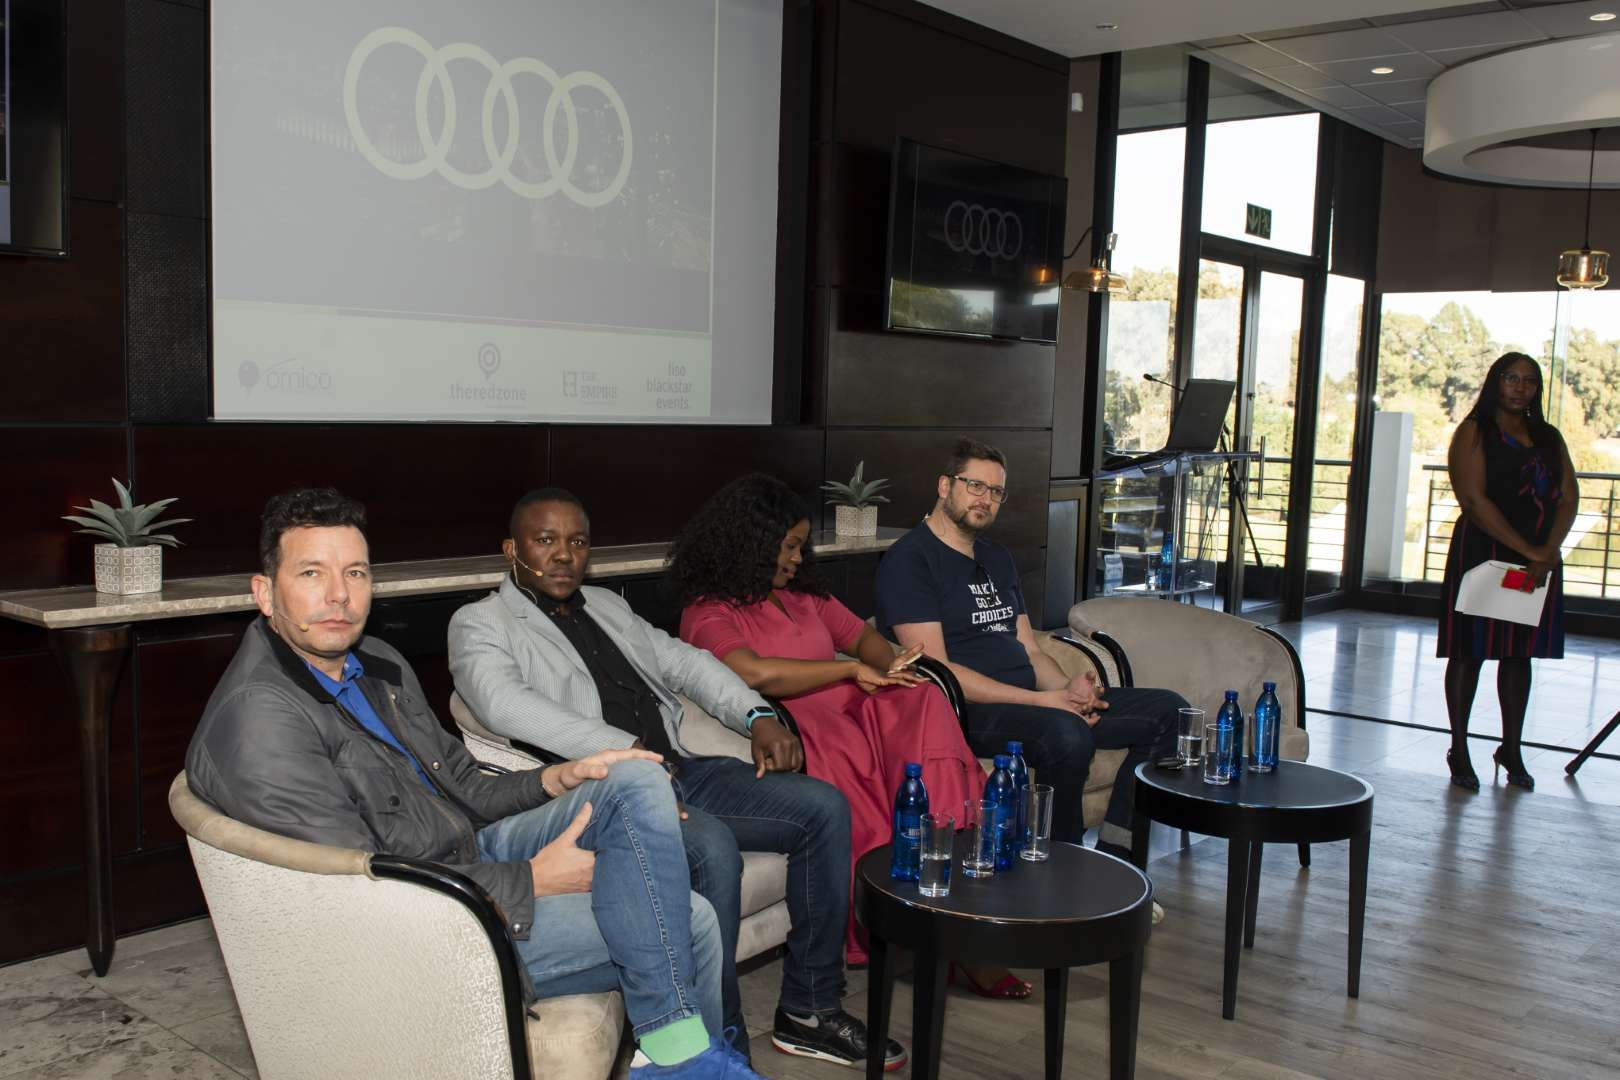 Financial Mail AdForum looking at Automotive Television Commercials from 2019 in South Africa